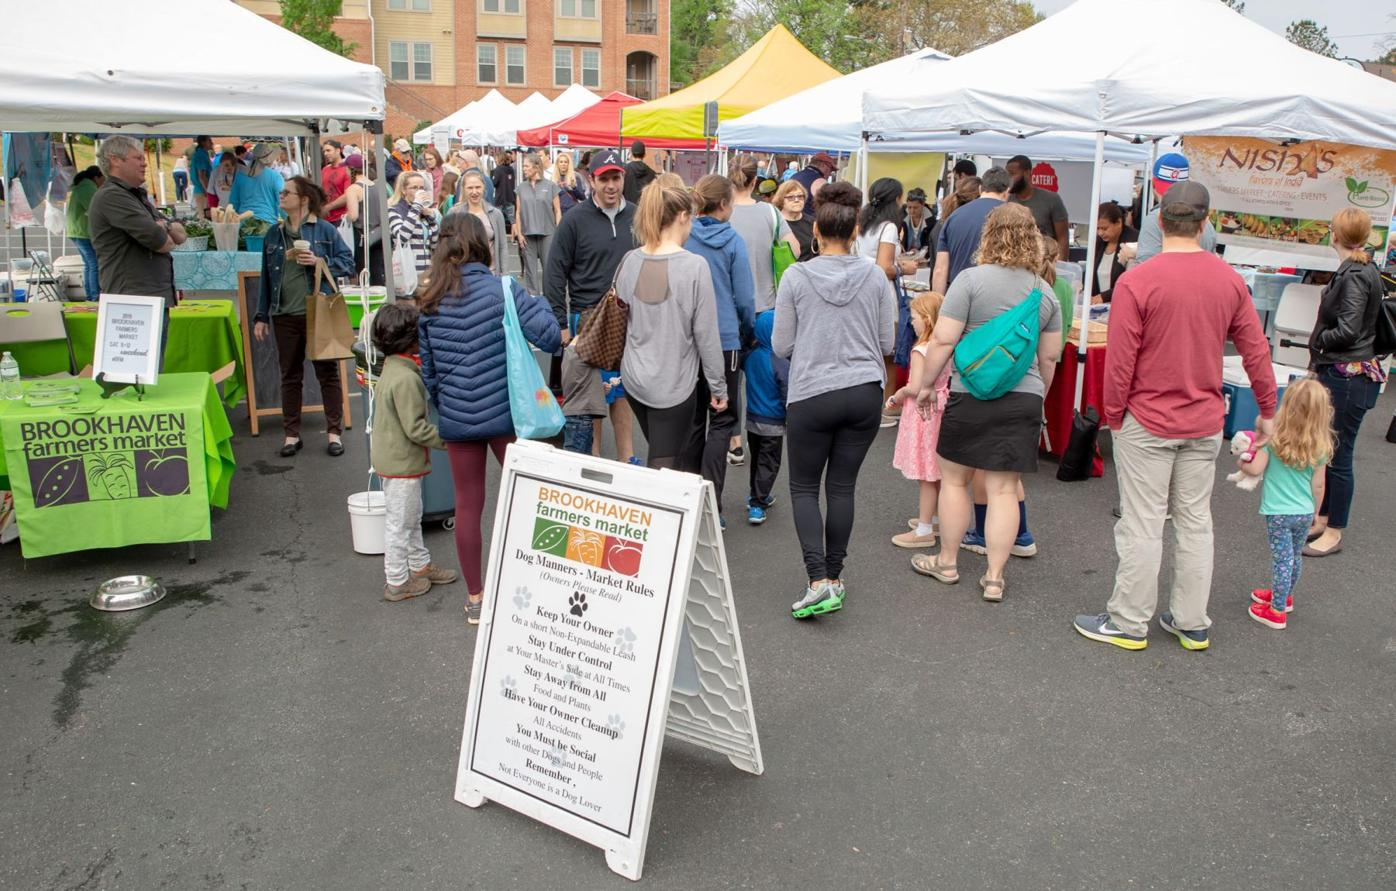 041520_MNS_farmers_market_001 overview